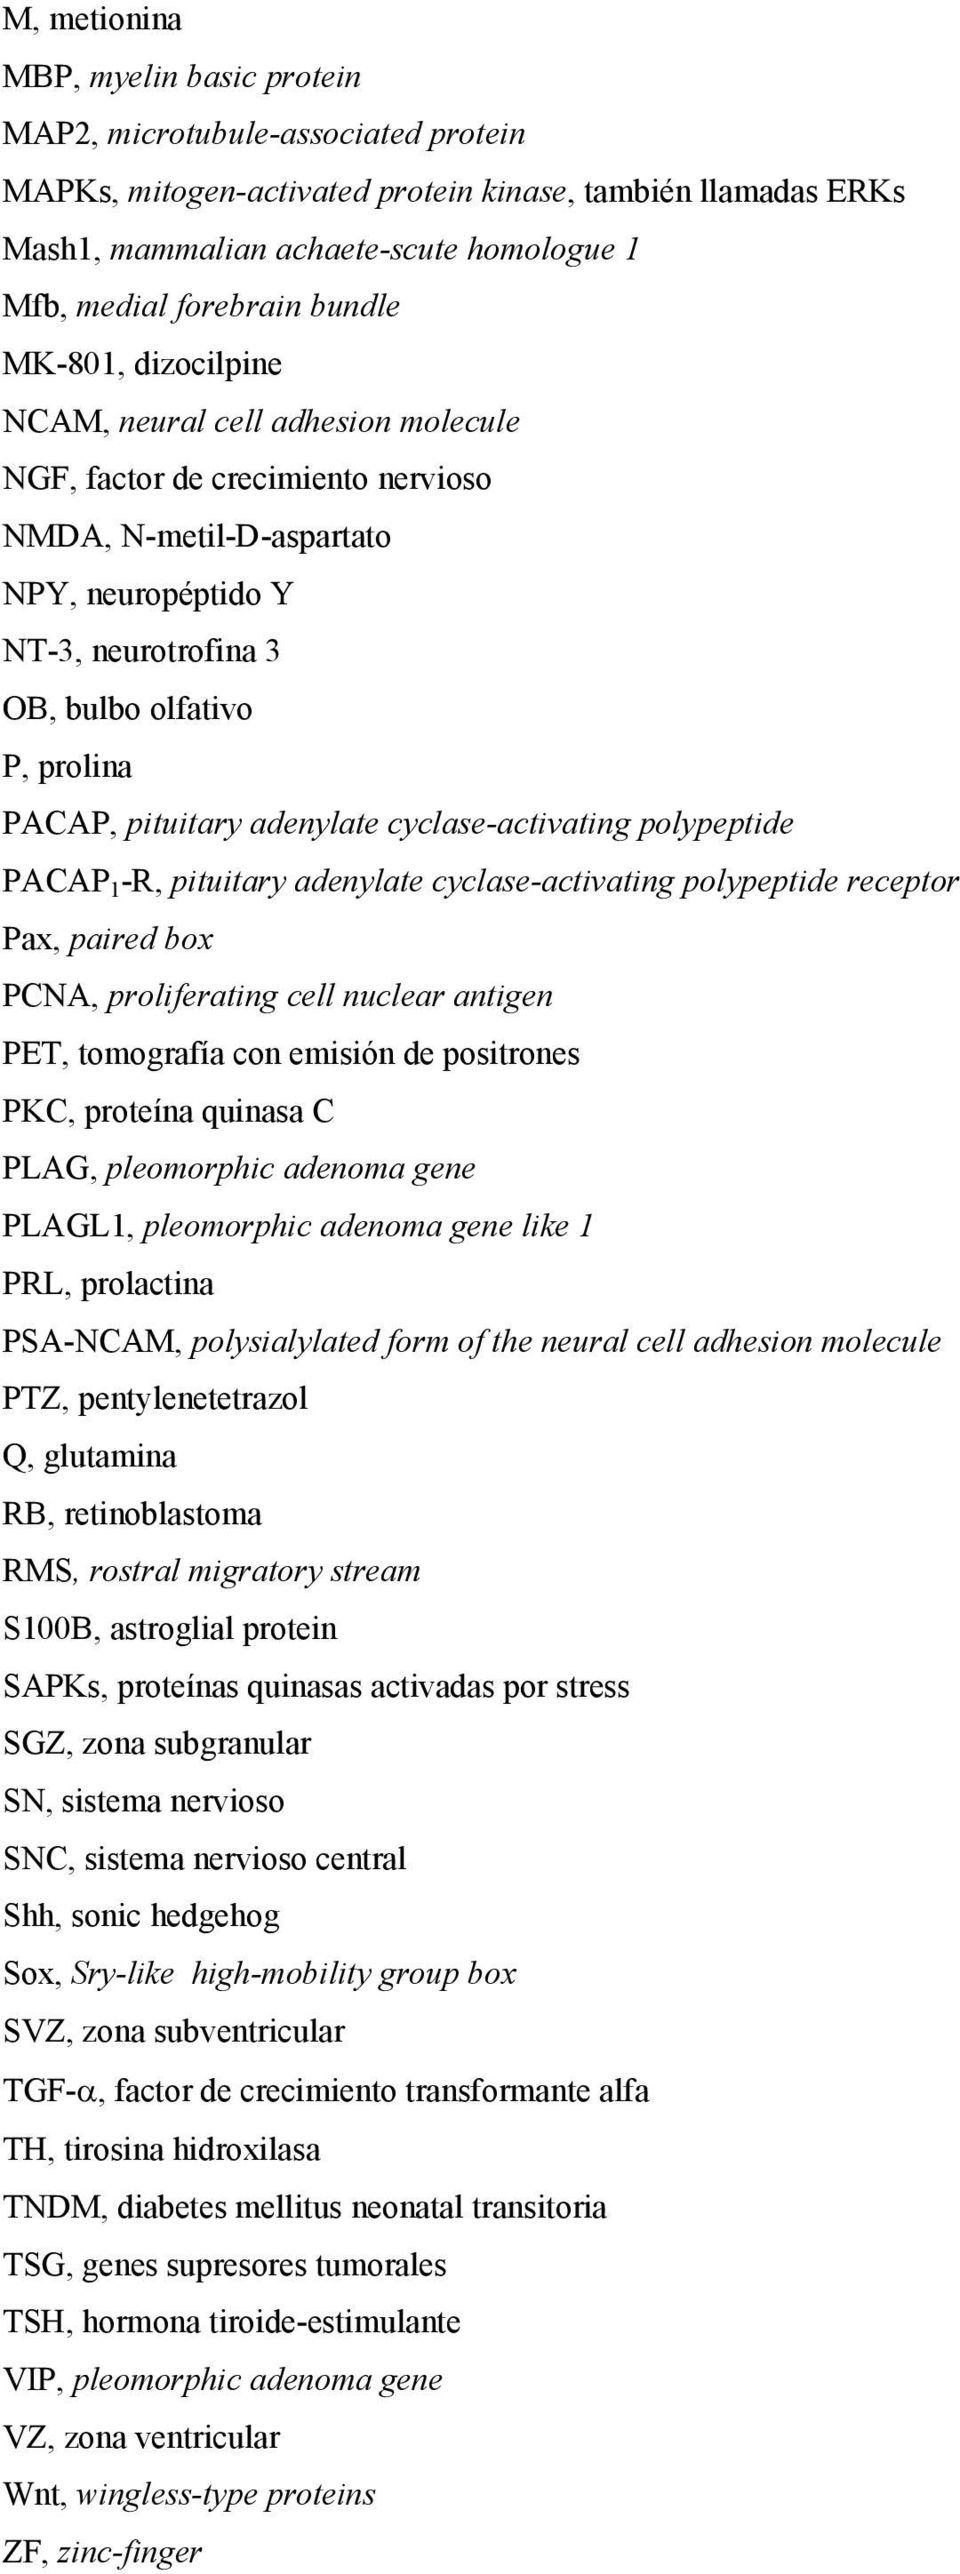 prolina PACAP, pituitary adenylate cyclase-activating polypeptide PACAP 1 -R, pituitary adenylate cyclase-activating polypeptide receptor Pax, paired box PCNA, proliferating cell nuclear antigen PET,